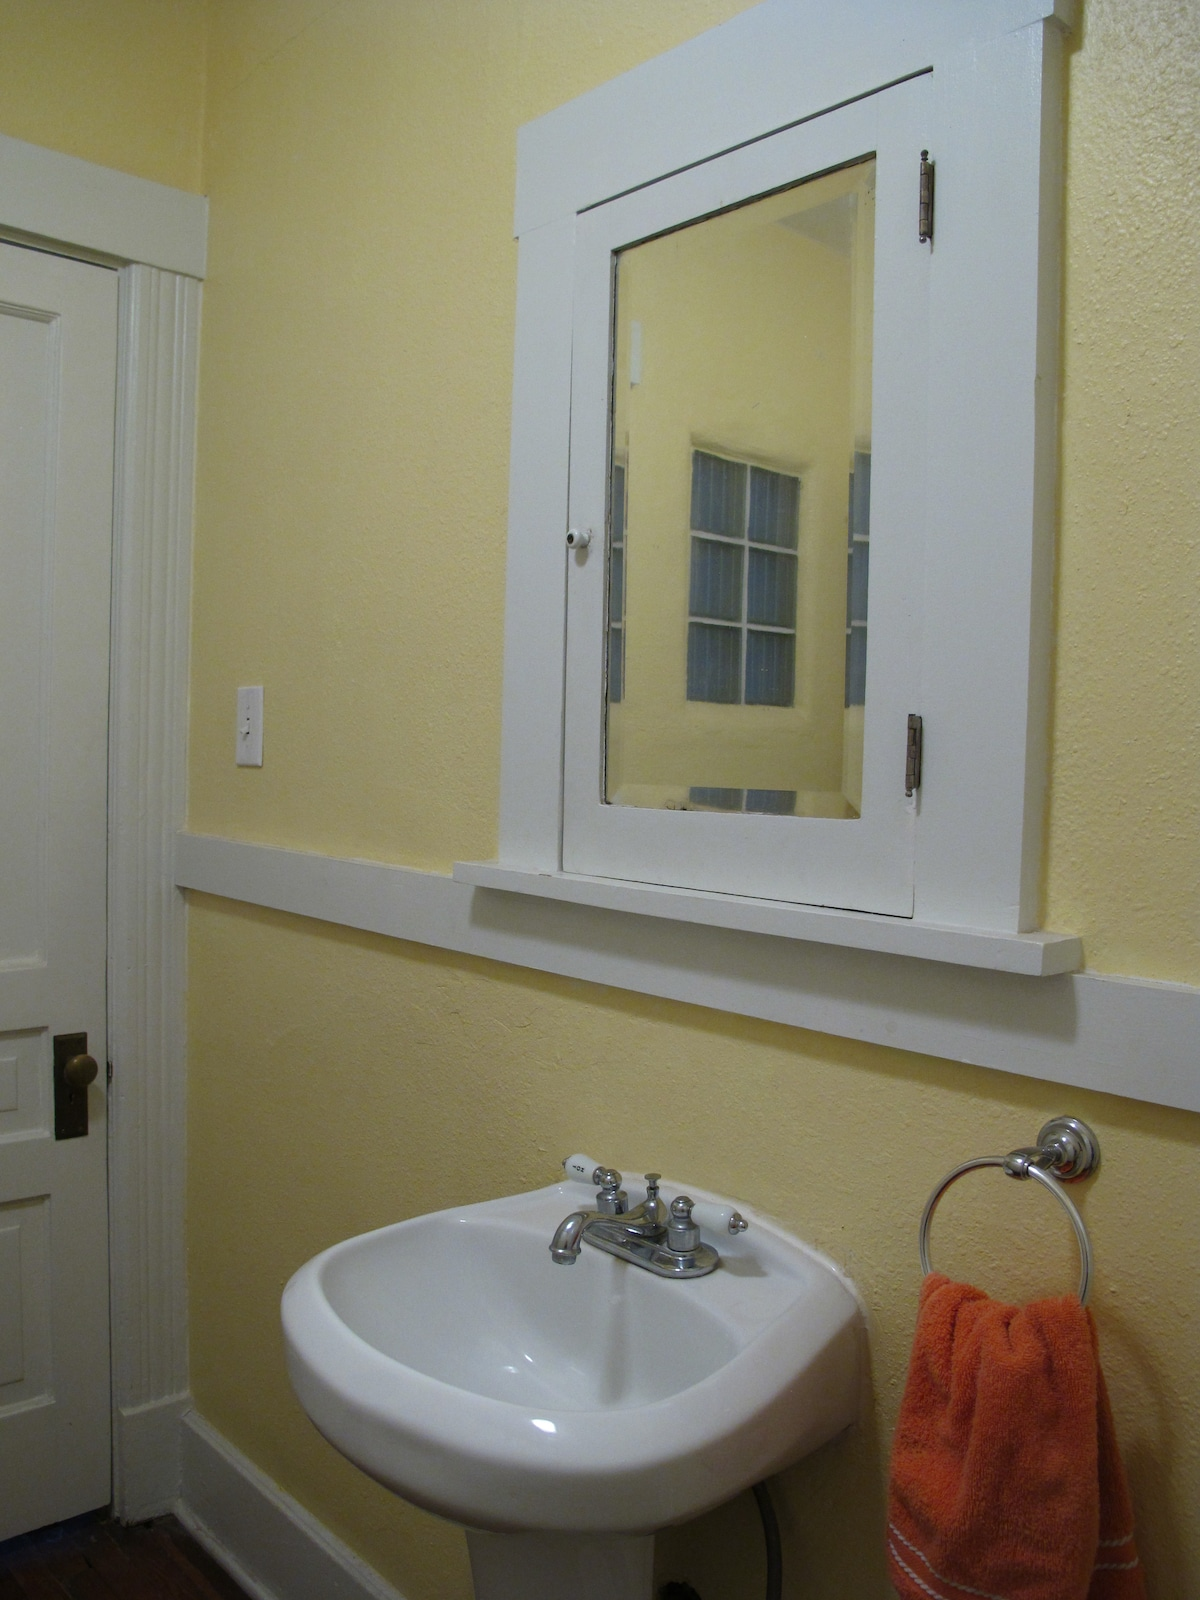 The bathroom may be tiny, but it's clean and usable!